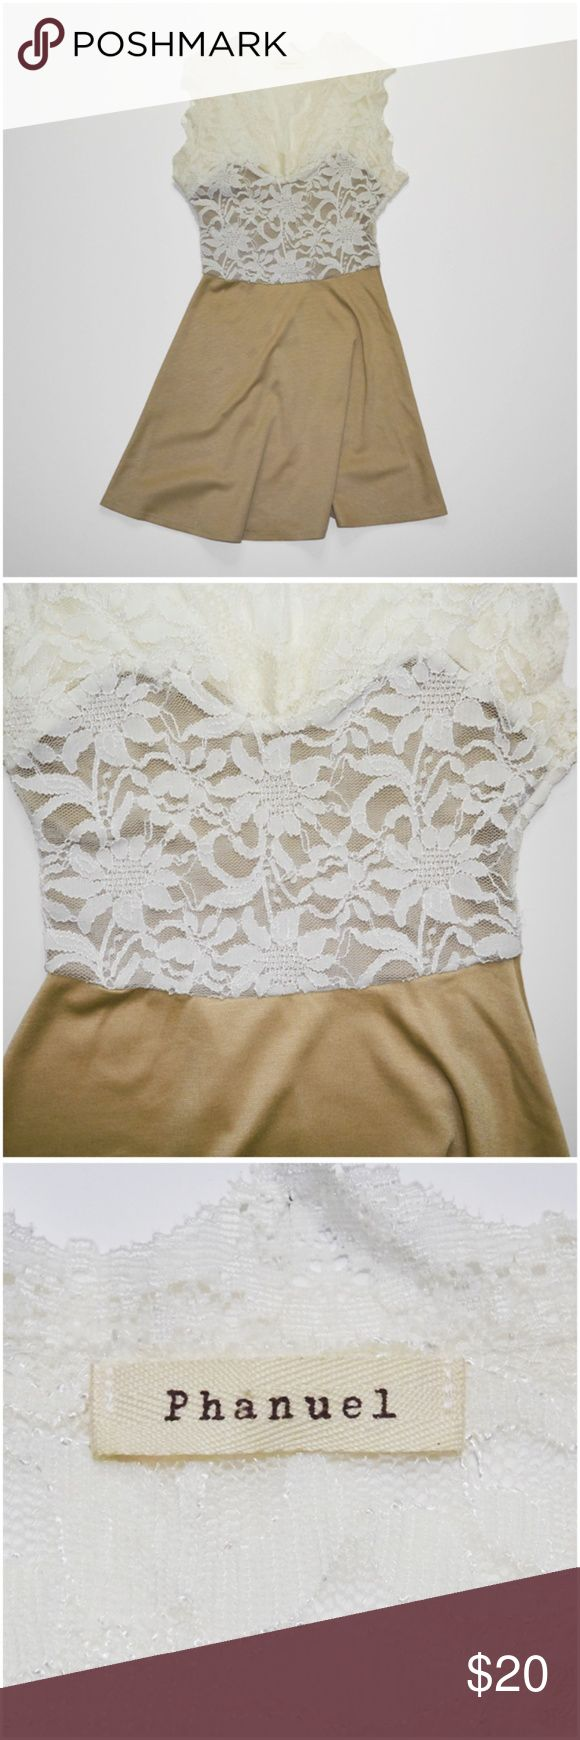 Phanuel Lace Dress This item is used. It's an ivory top lace dress with tan sweetheart neckline underneath and tan skirt.  ** Details ** - Small - Ivory | Tan - Lace | Sweetheart Neckline - Sleeveless - 55% Polyester | 40% Nylon | 5% Spandex Phanuel Dresses